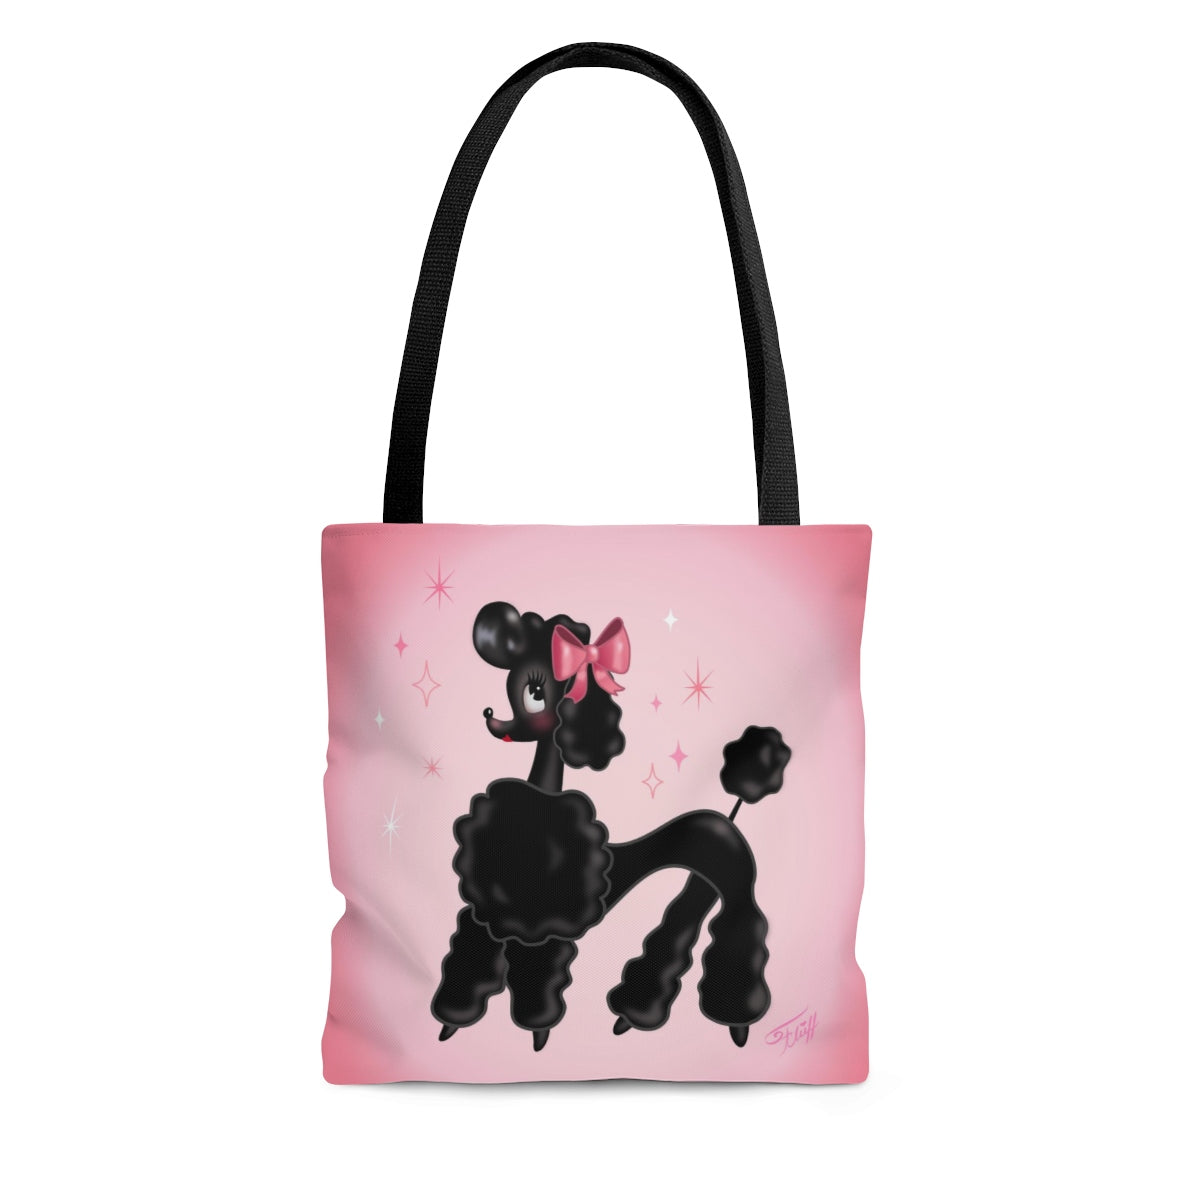 Pixie Poodle Black • Tote Bag